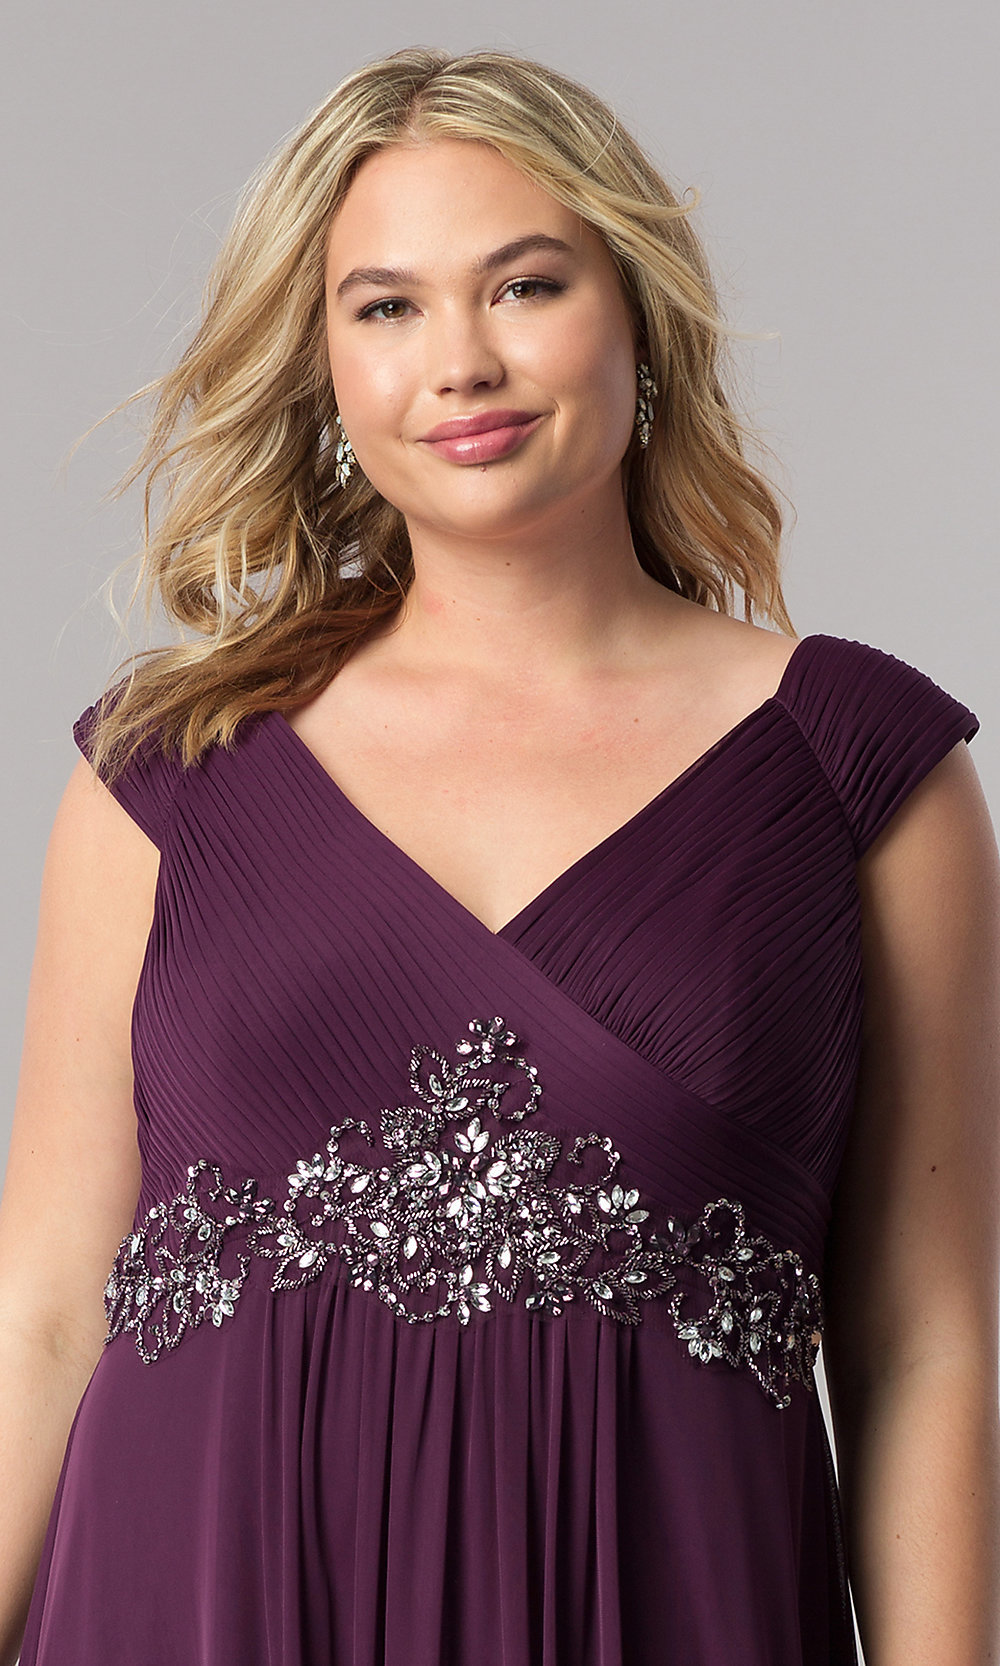 eb190c4e431 ... plus-size mother-of-the-bride dress. Tap to expand